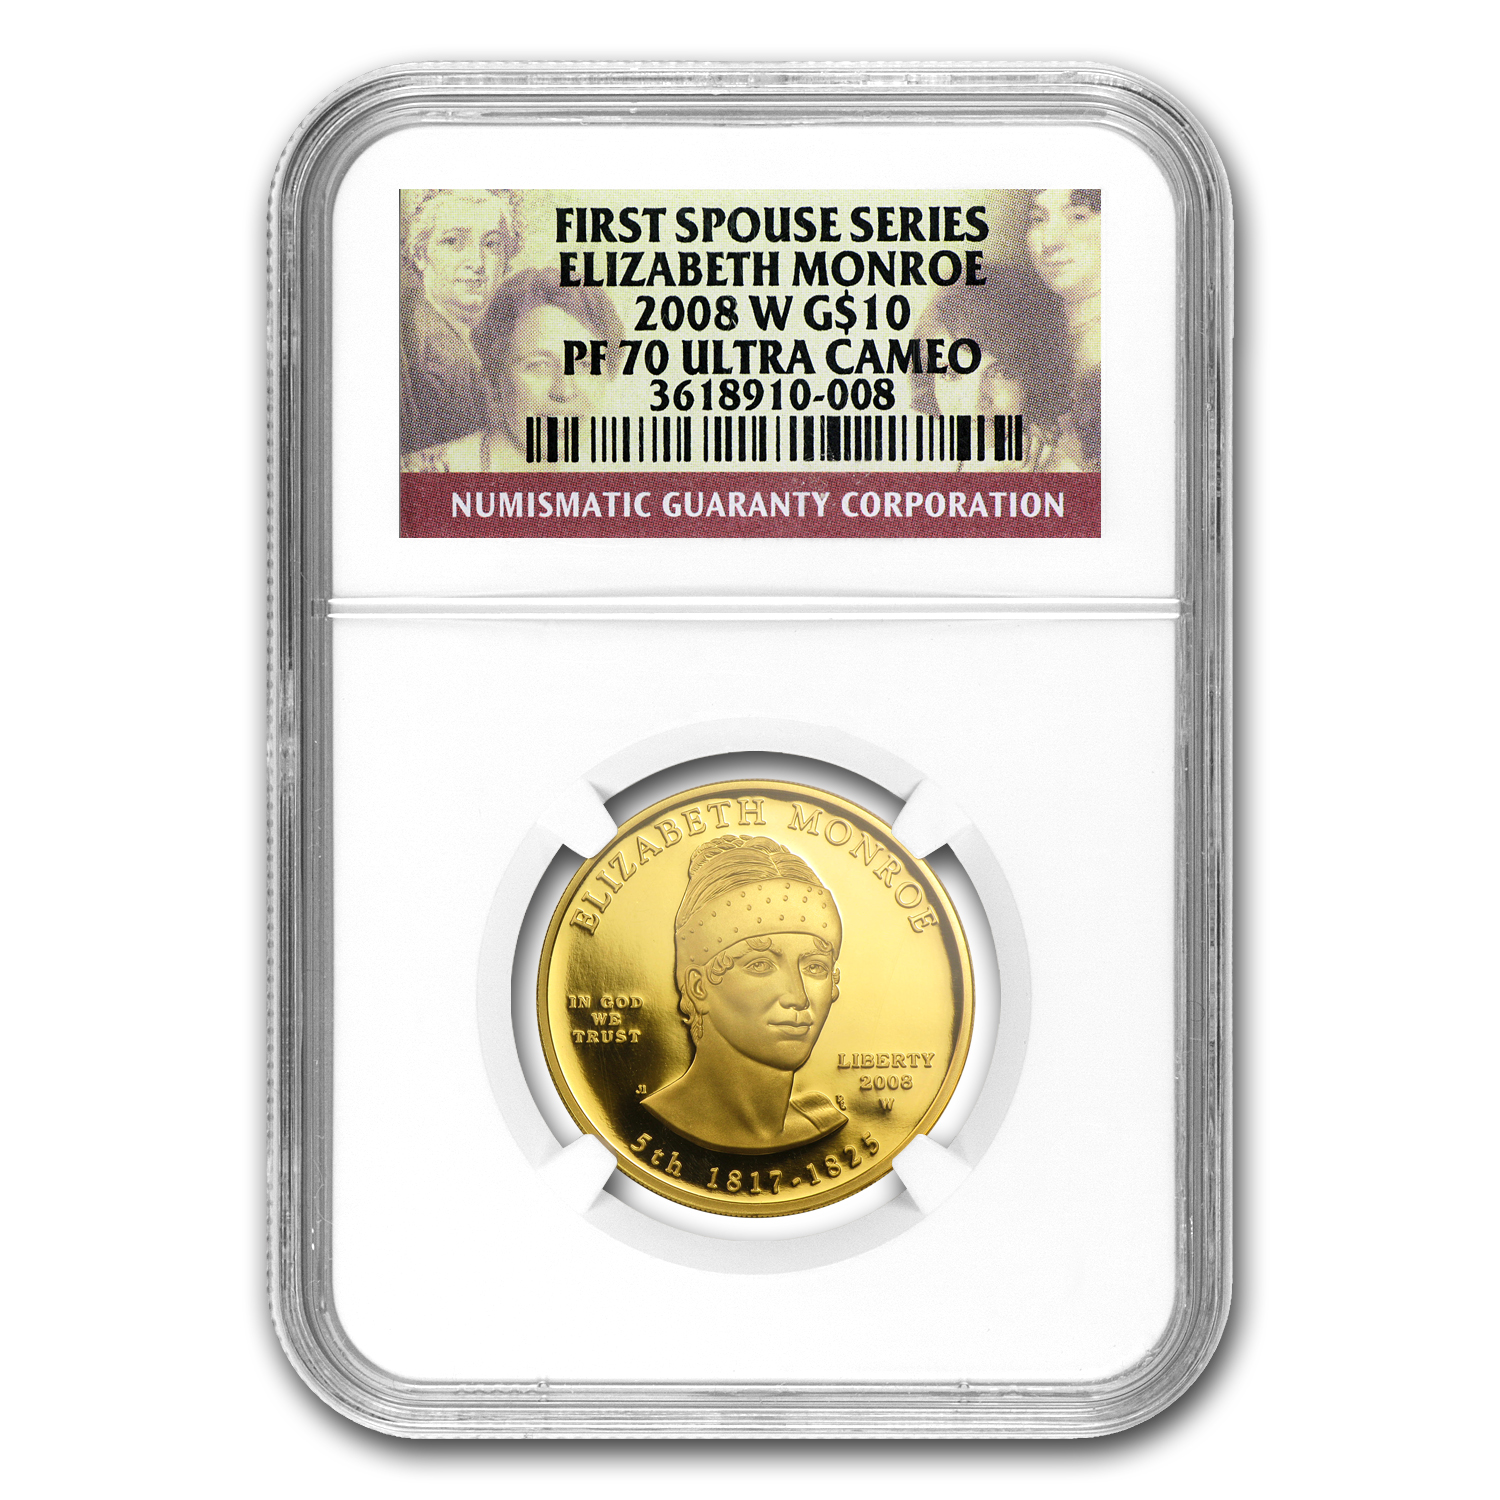 2008-W 1/2 oz Proof Gold Elizabeth Monroe PF-70 NGC